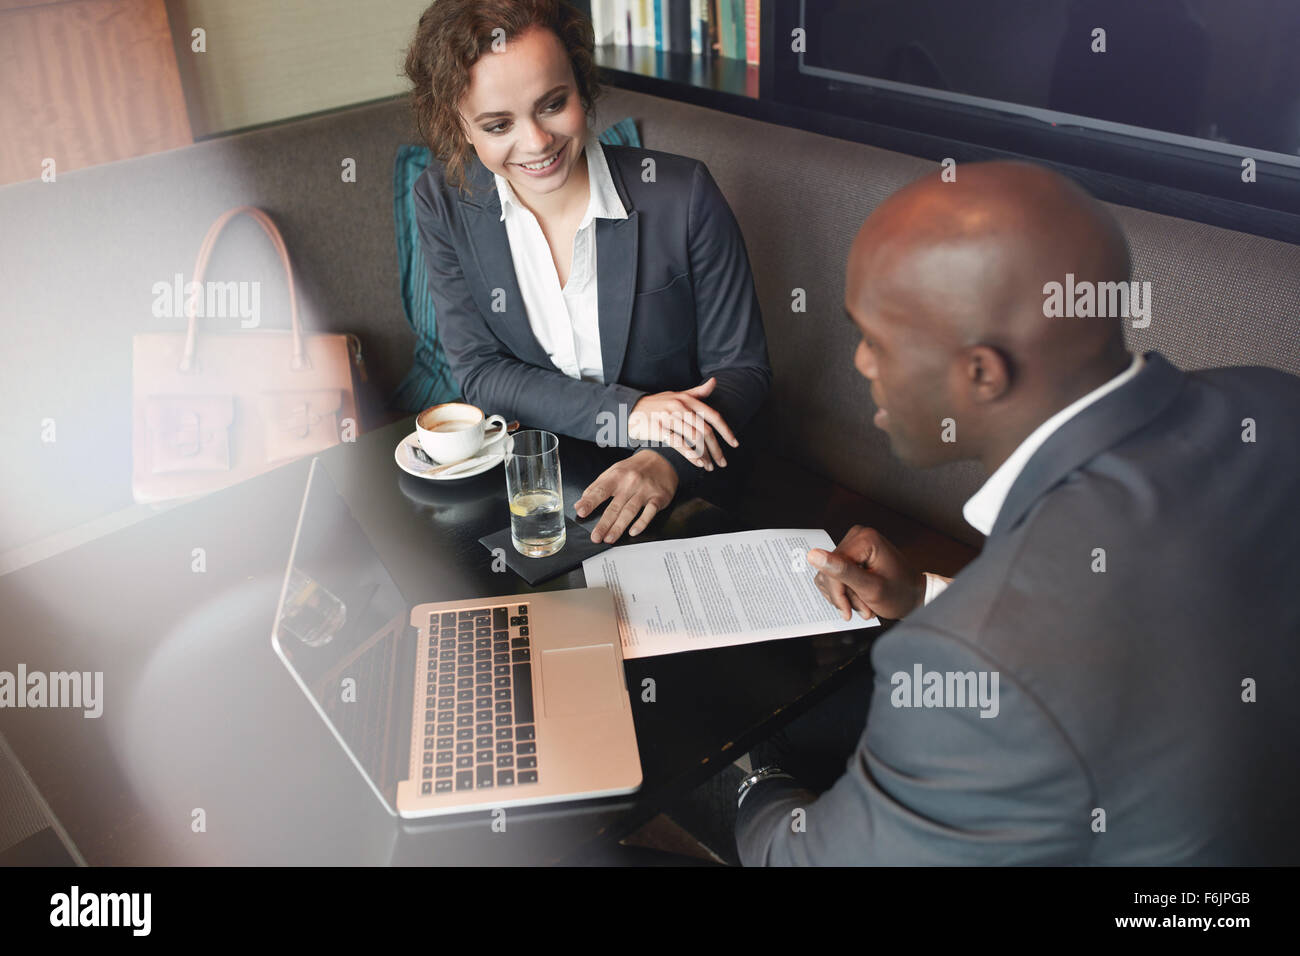 Shot of two young business colleagues working together at coffee shop. Business partners meeting at a cafe. - Stock Image